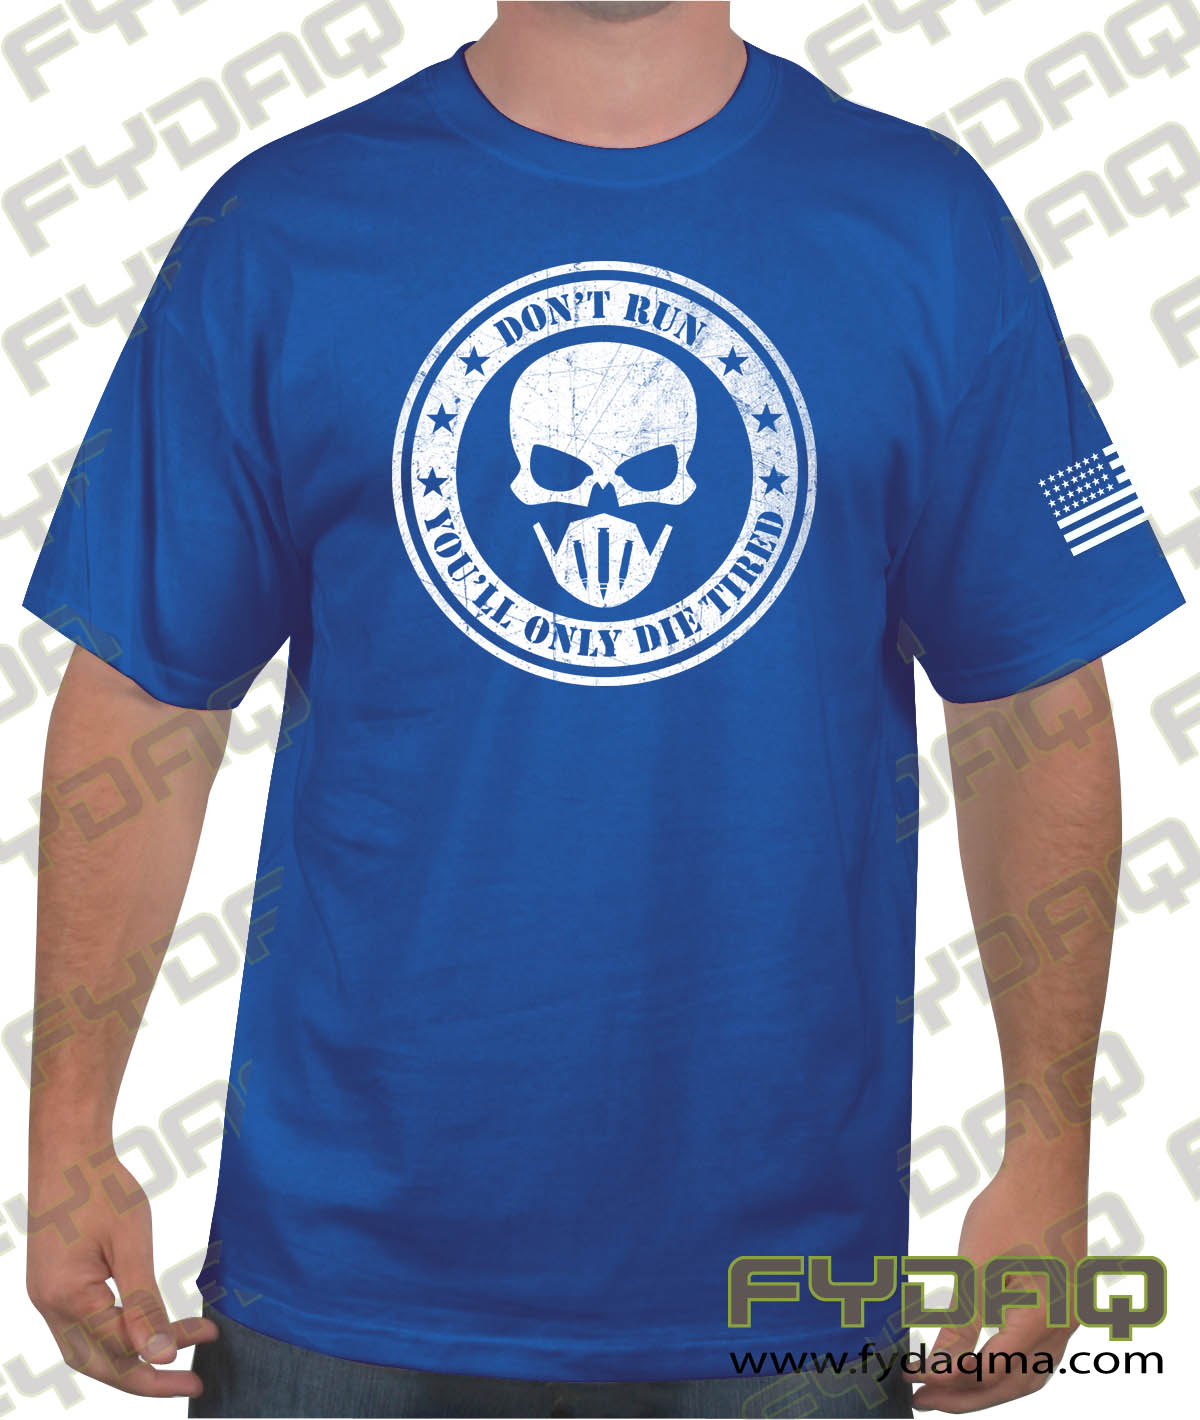 Don't-run-you'll-only-die-tired-royal-blue-shirt-FYDAQ